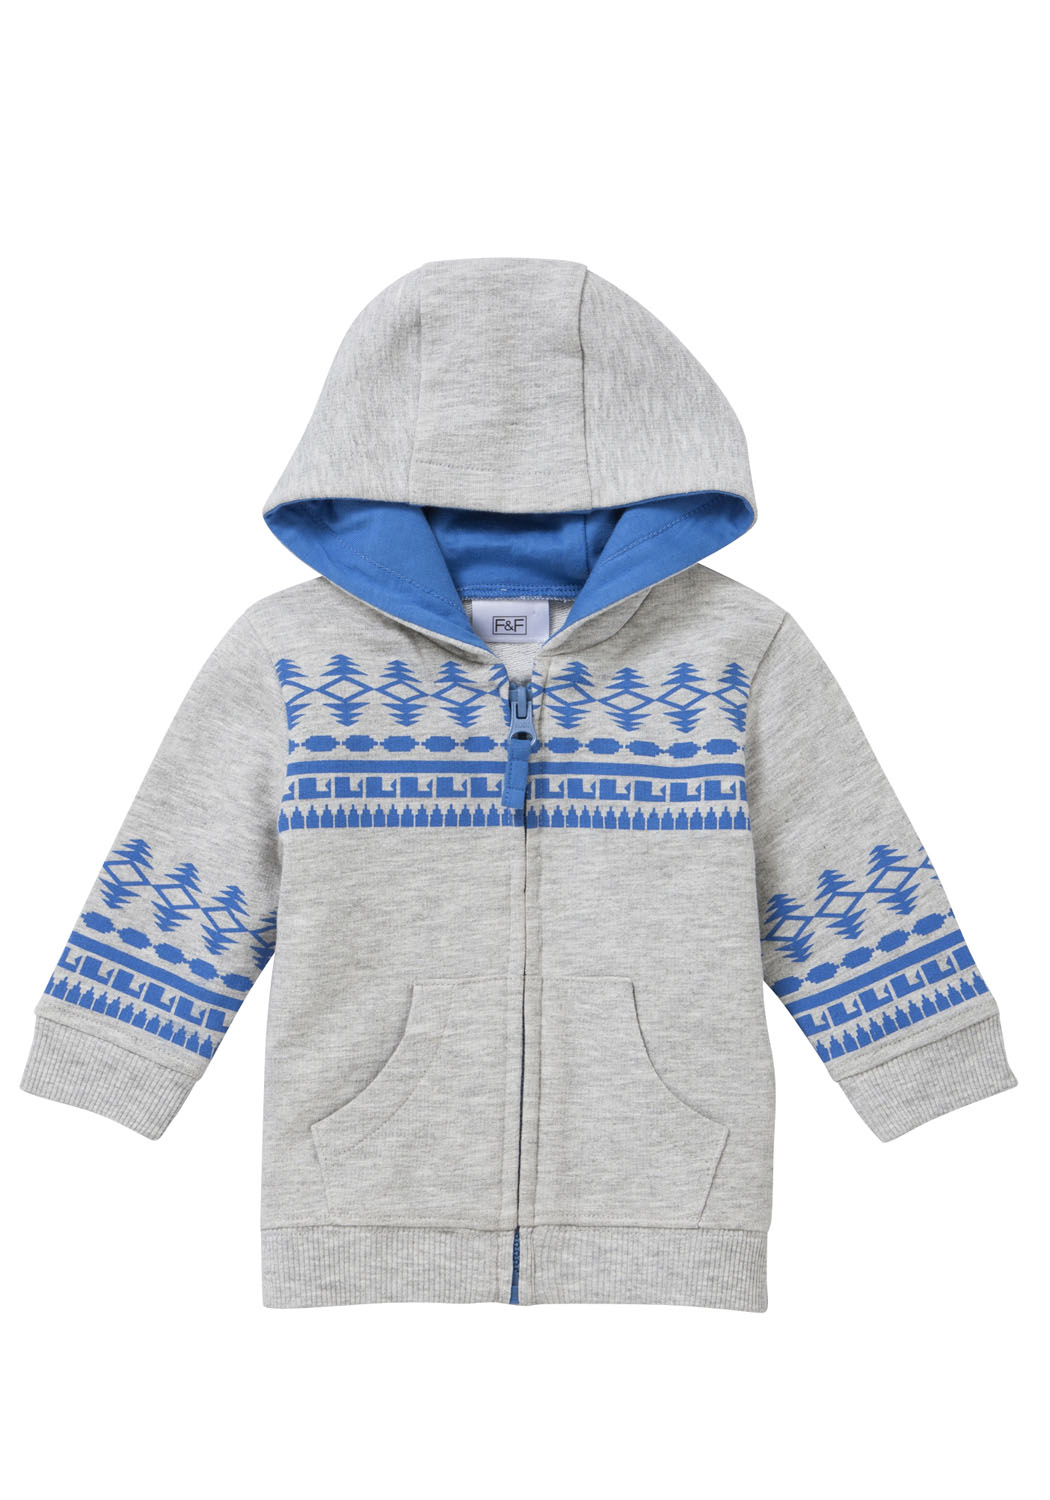 Buy the latest boys clothes at Tu clothing online. Sainsbury's Tu clothing can be found in selected Sainsbury's stores across the UK.